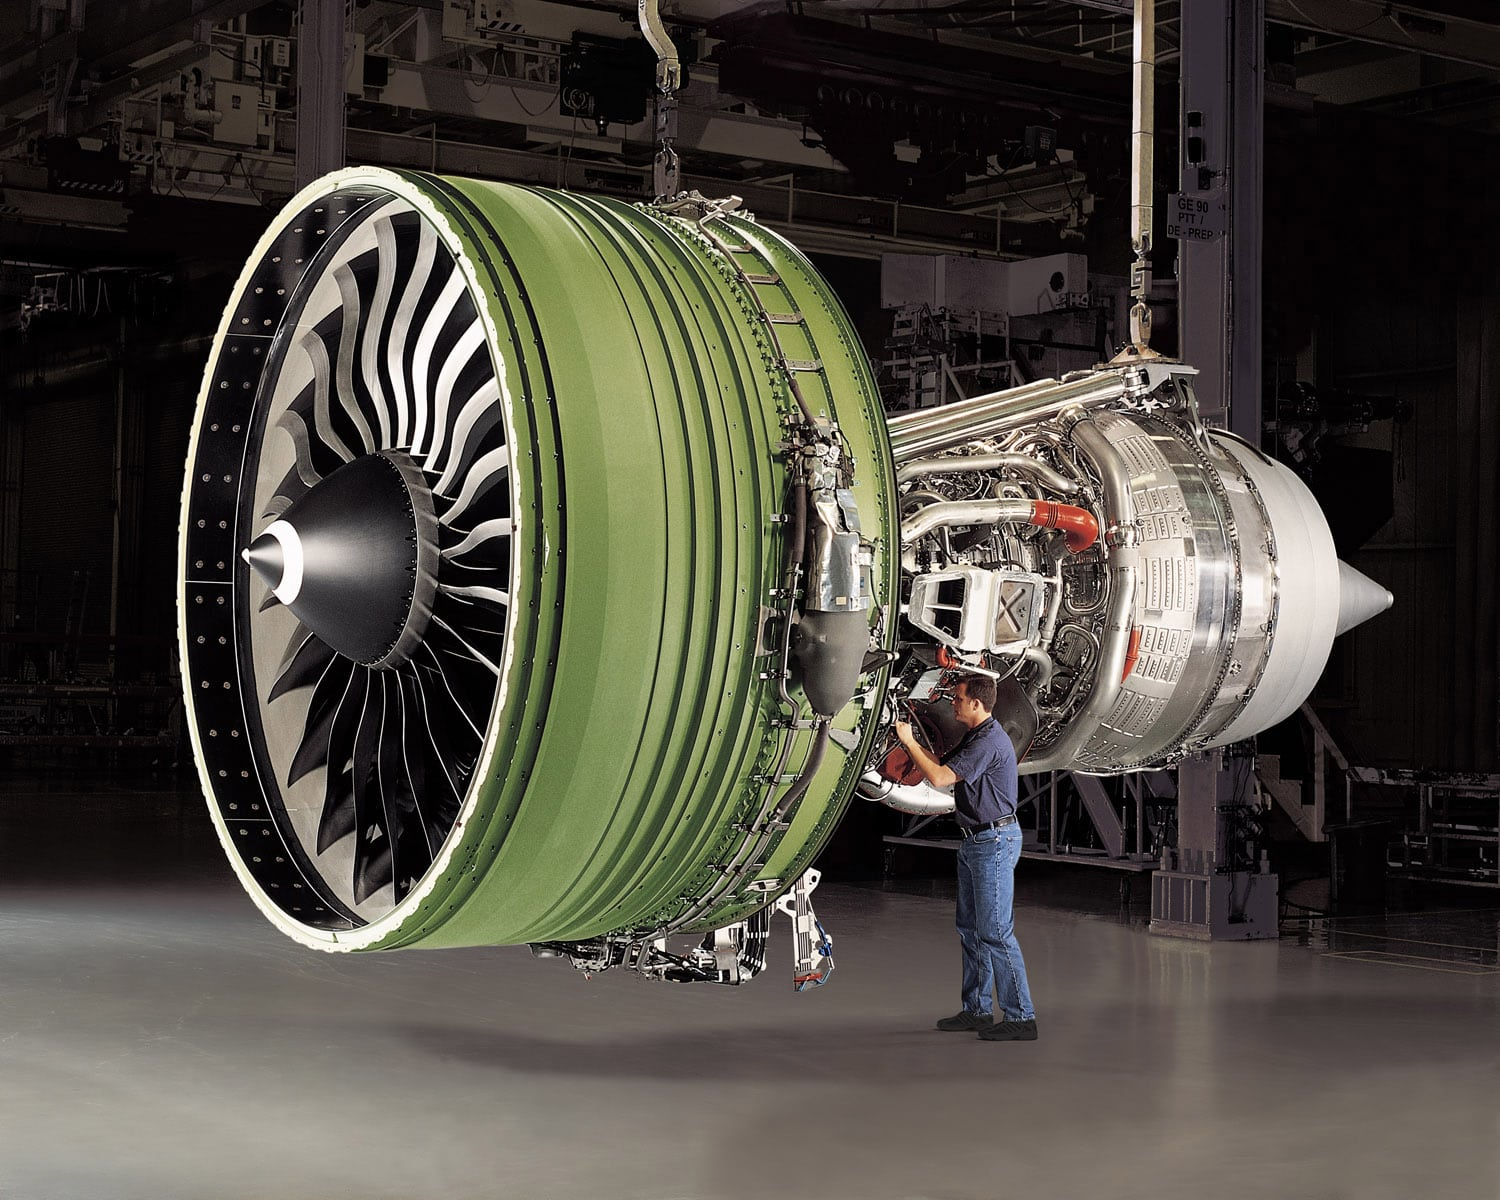 GE90-115B engine with person